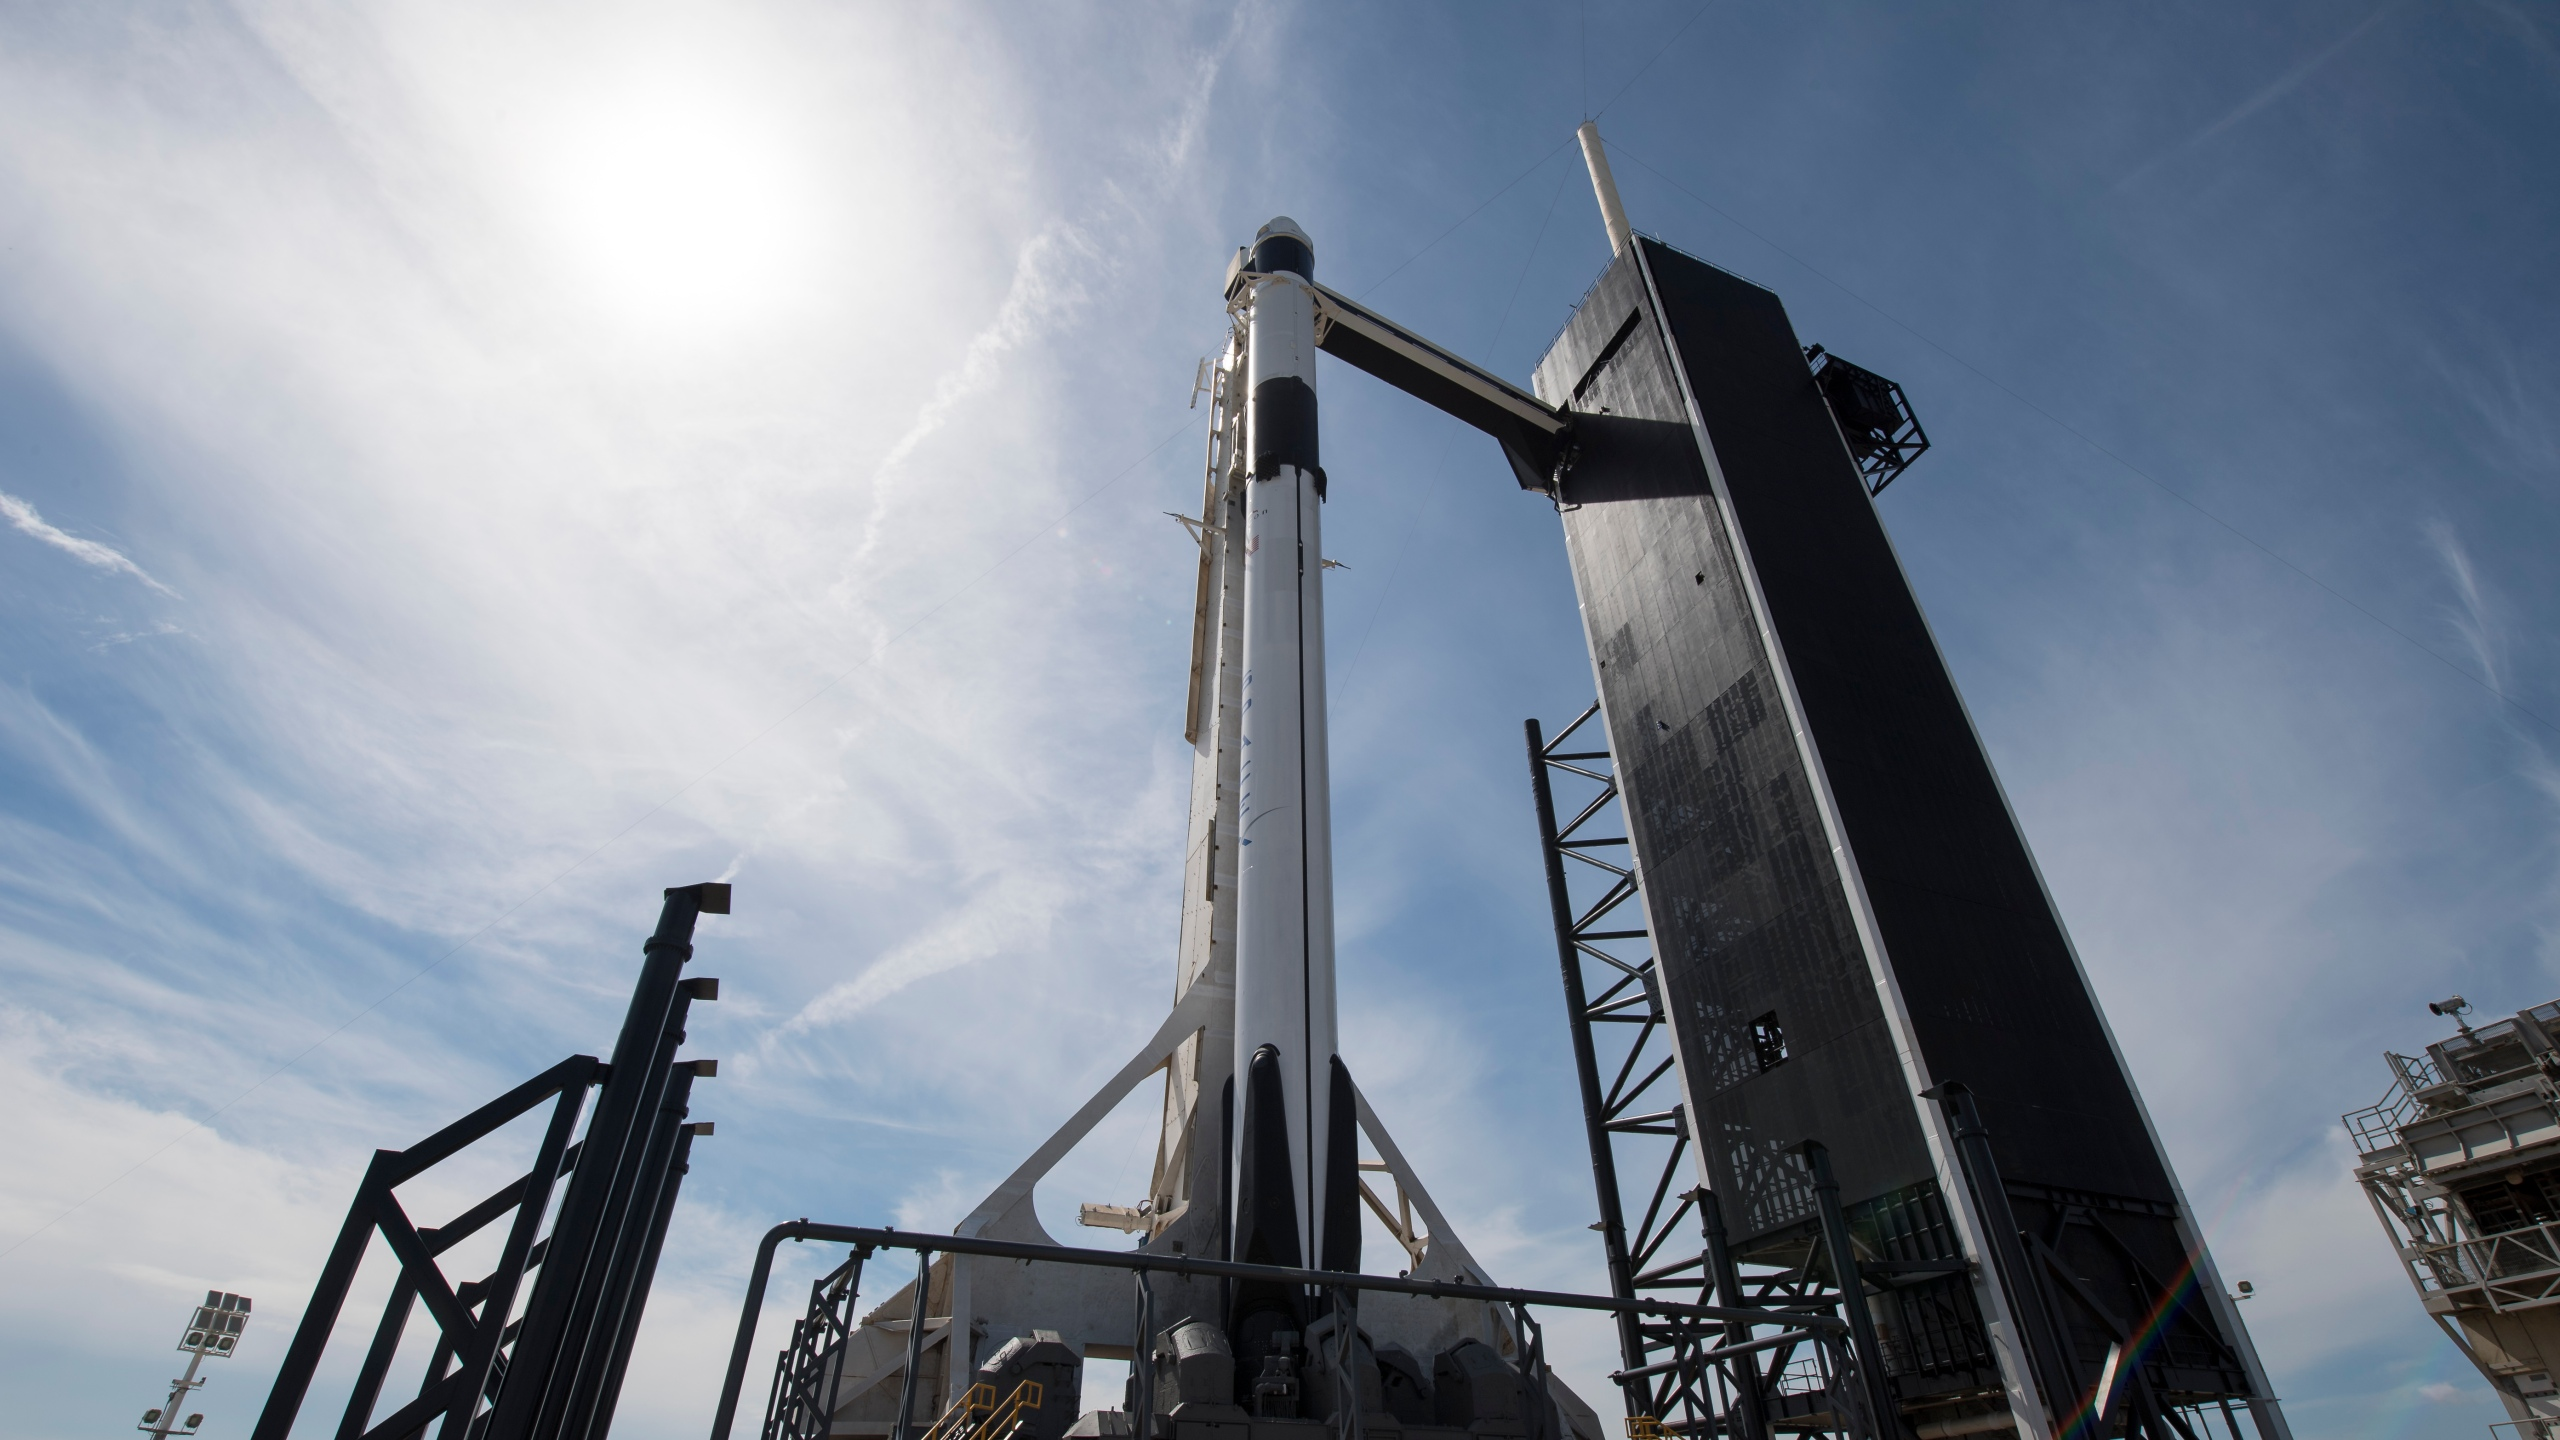 SpaceX Falcon 9 rocket with the company's Crew Dragon spacecraft onboard is seen on the launch pad on Friday, March 1, 2019 at the Kennedy Space Center in Florida. (Credit: Joel Kowsky/NASA via Getty Images)